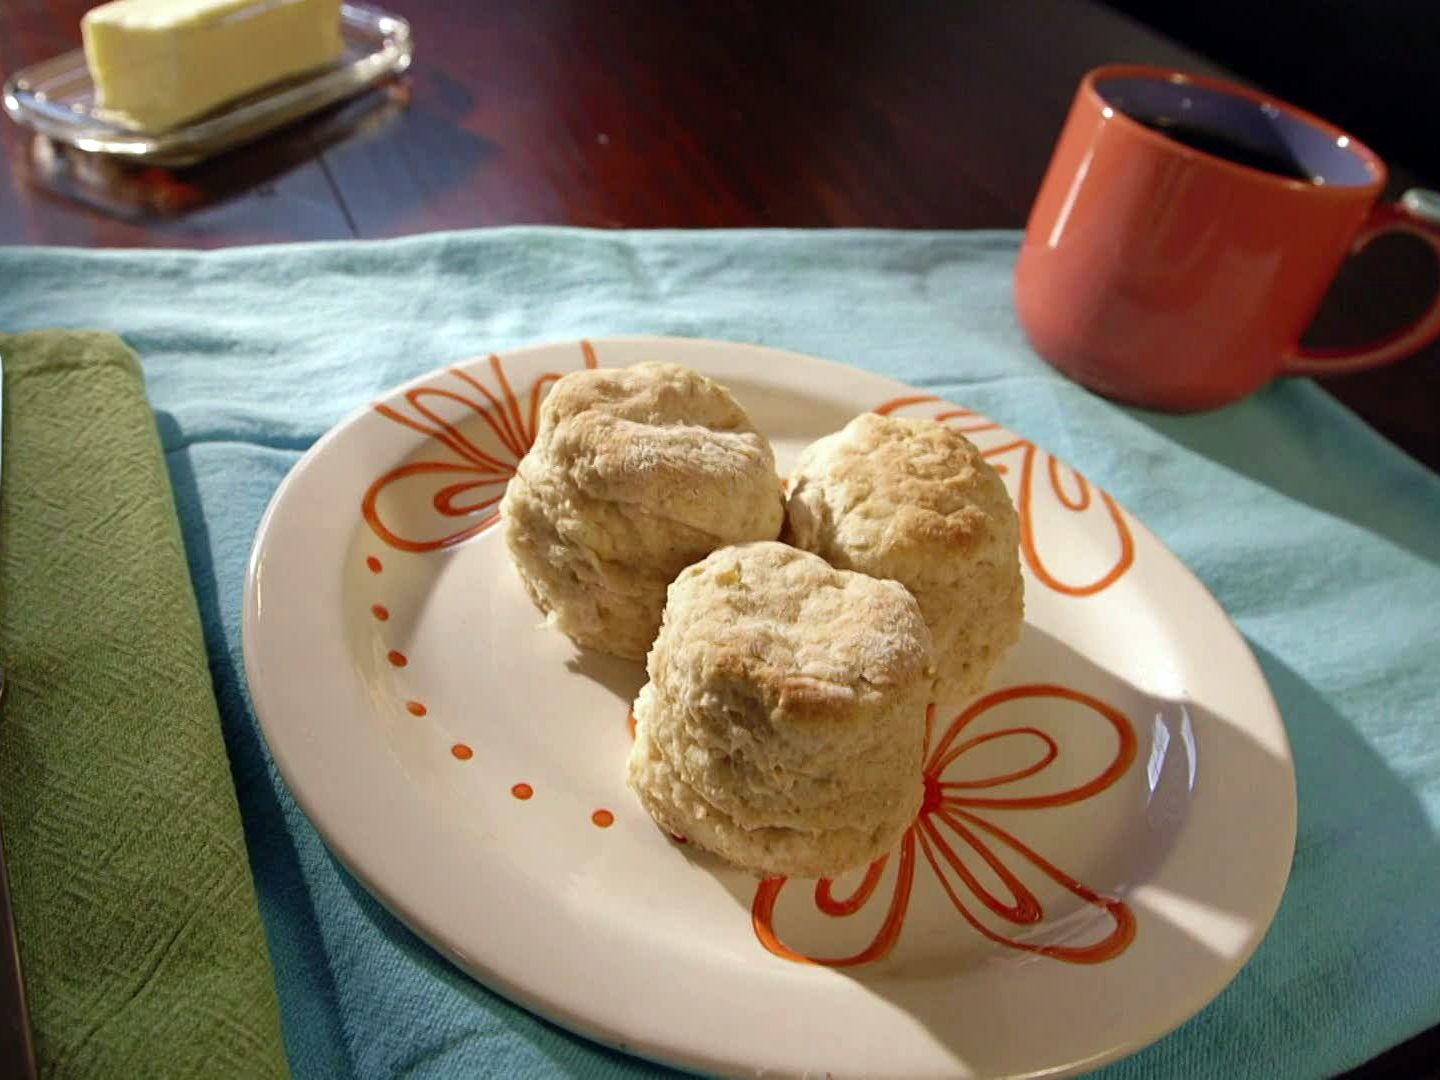 Whole grain biscuits recipe healthy biscuits recipes and food whole grain biscuits diabetes recipesdiabetic forumfinder Image collections